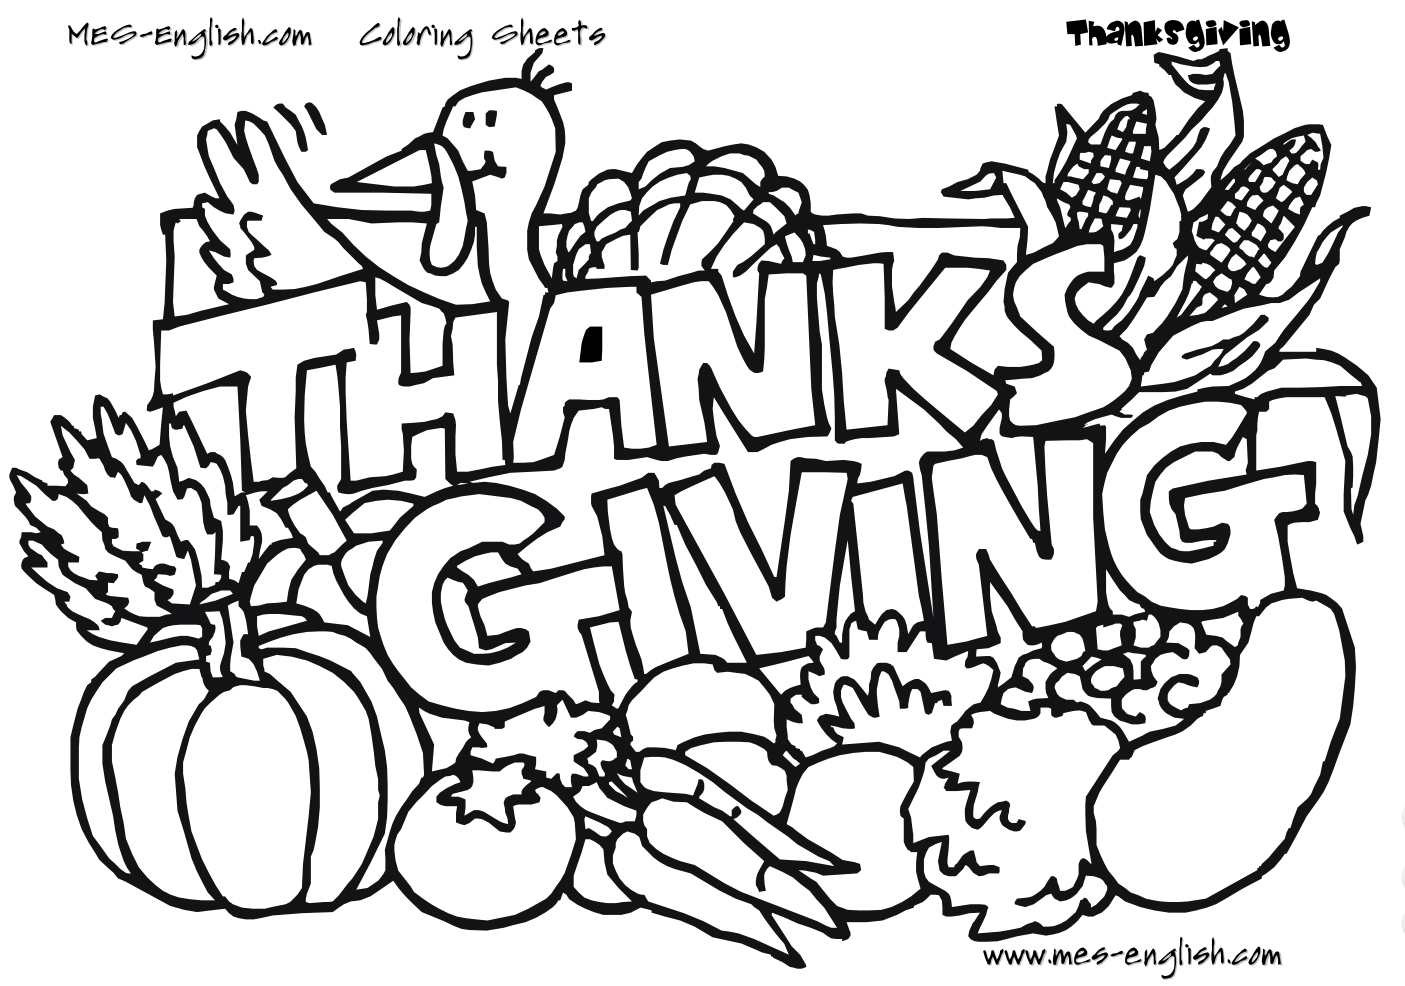 Thanksgiving Coloring Pages For Children  Keep Kids Busy with Free Thanksgiving Coloring Pages